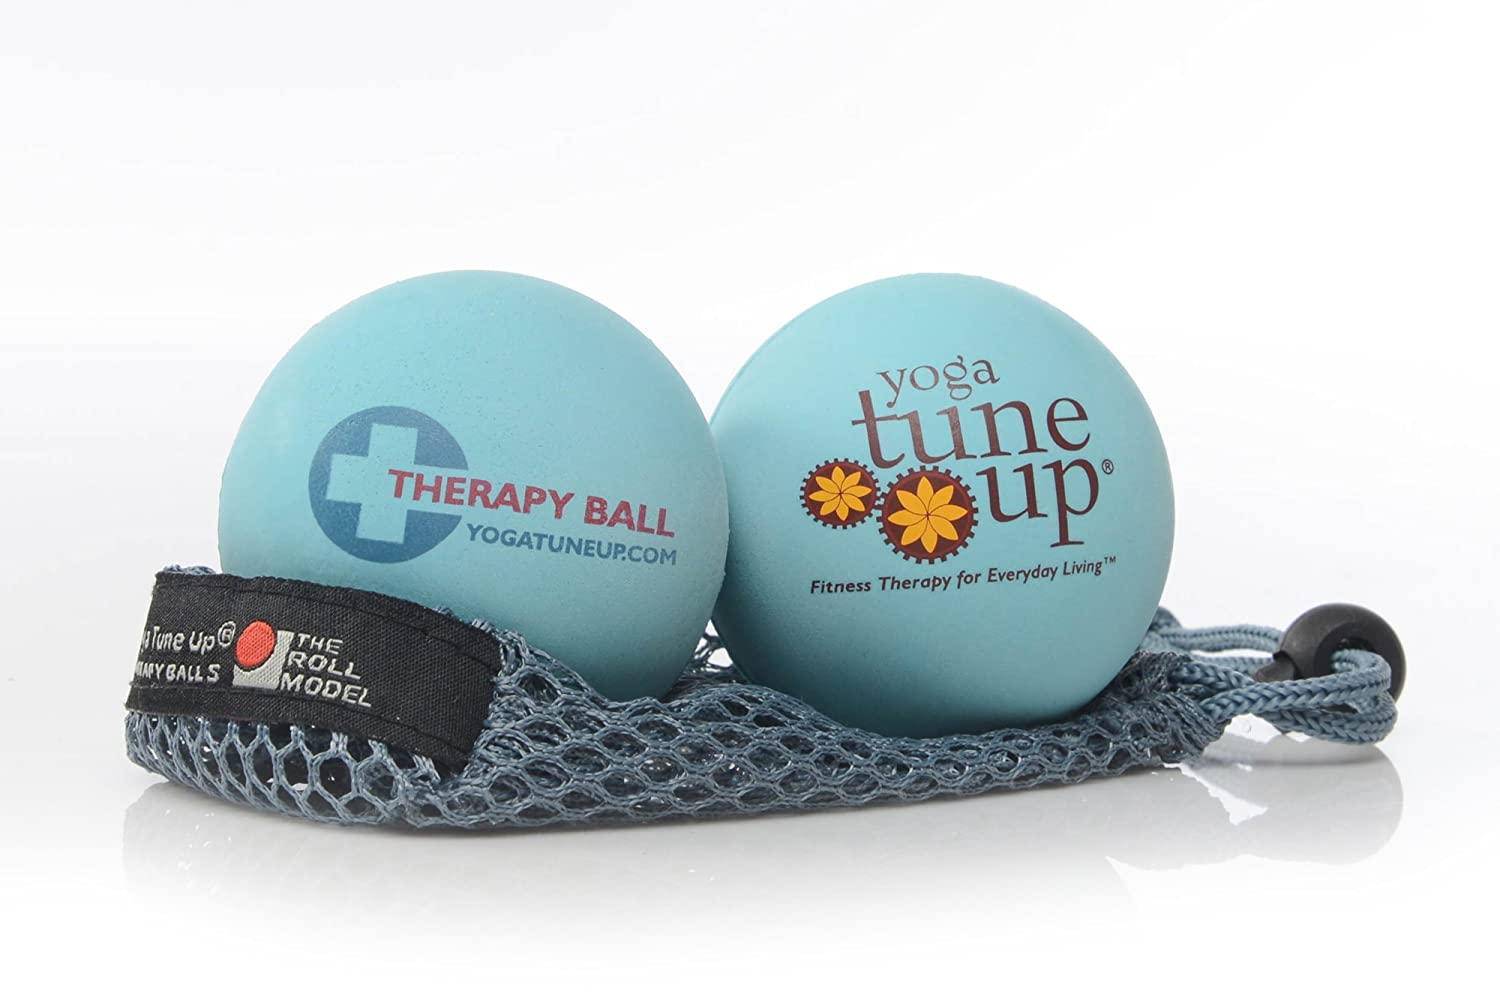 Yoga Tune Up Jill Millers Therapy Balls Aqua Blue by Yoga ...